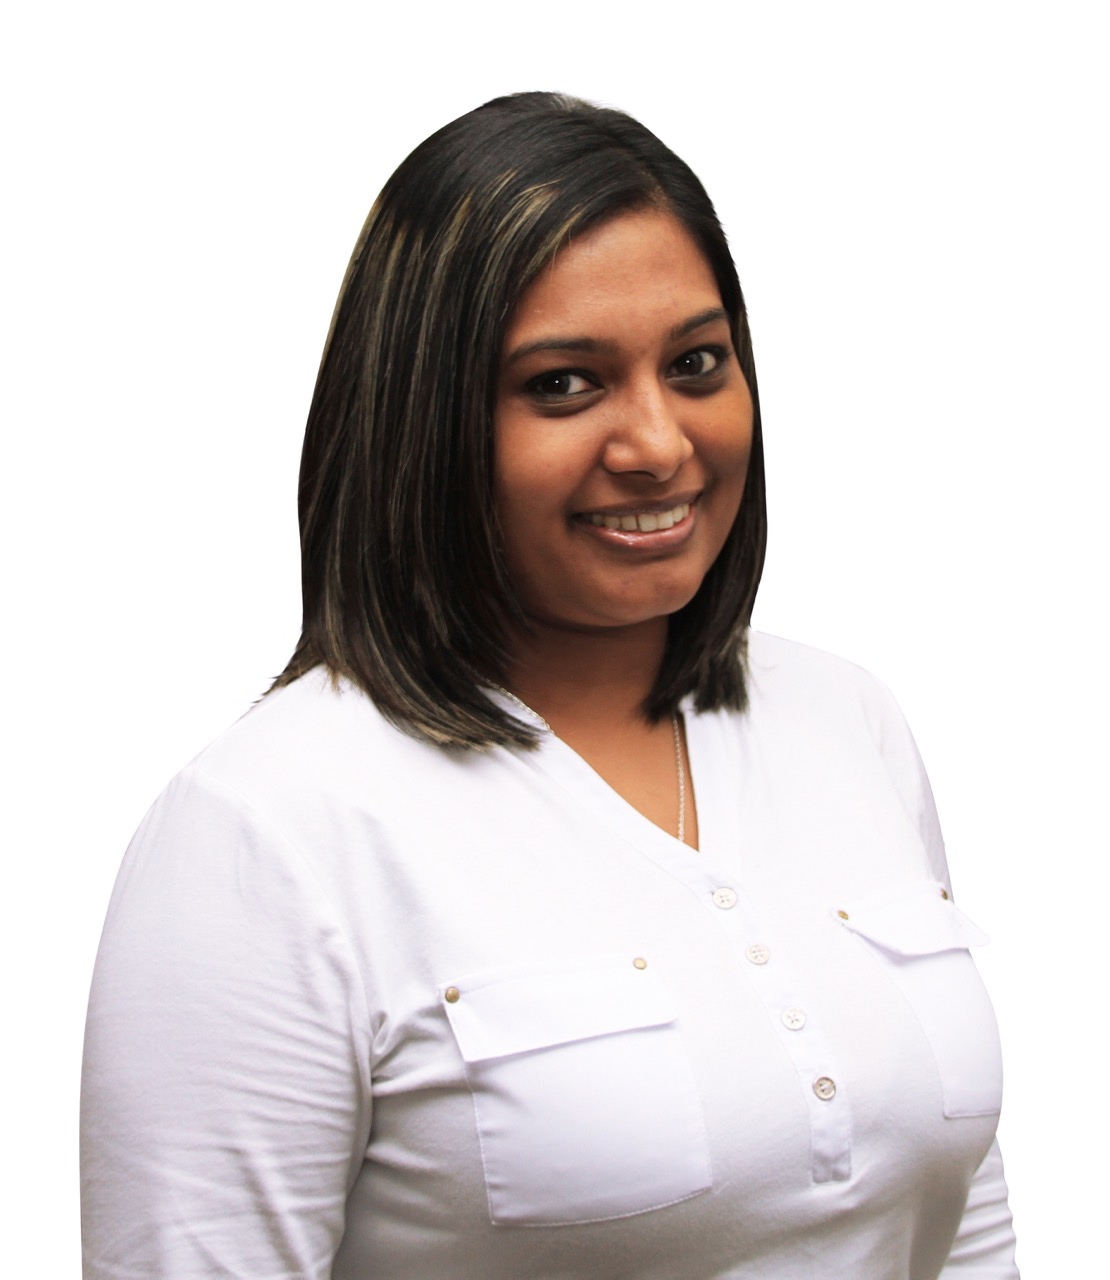 RPC Astrapak welcomes Ms Christine Naidoo as the newly appointed Group Financial Manager and Company Secretary with effect from 1 July 2017.